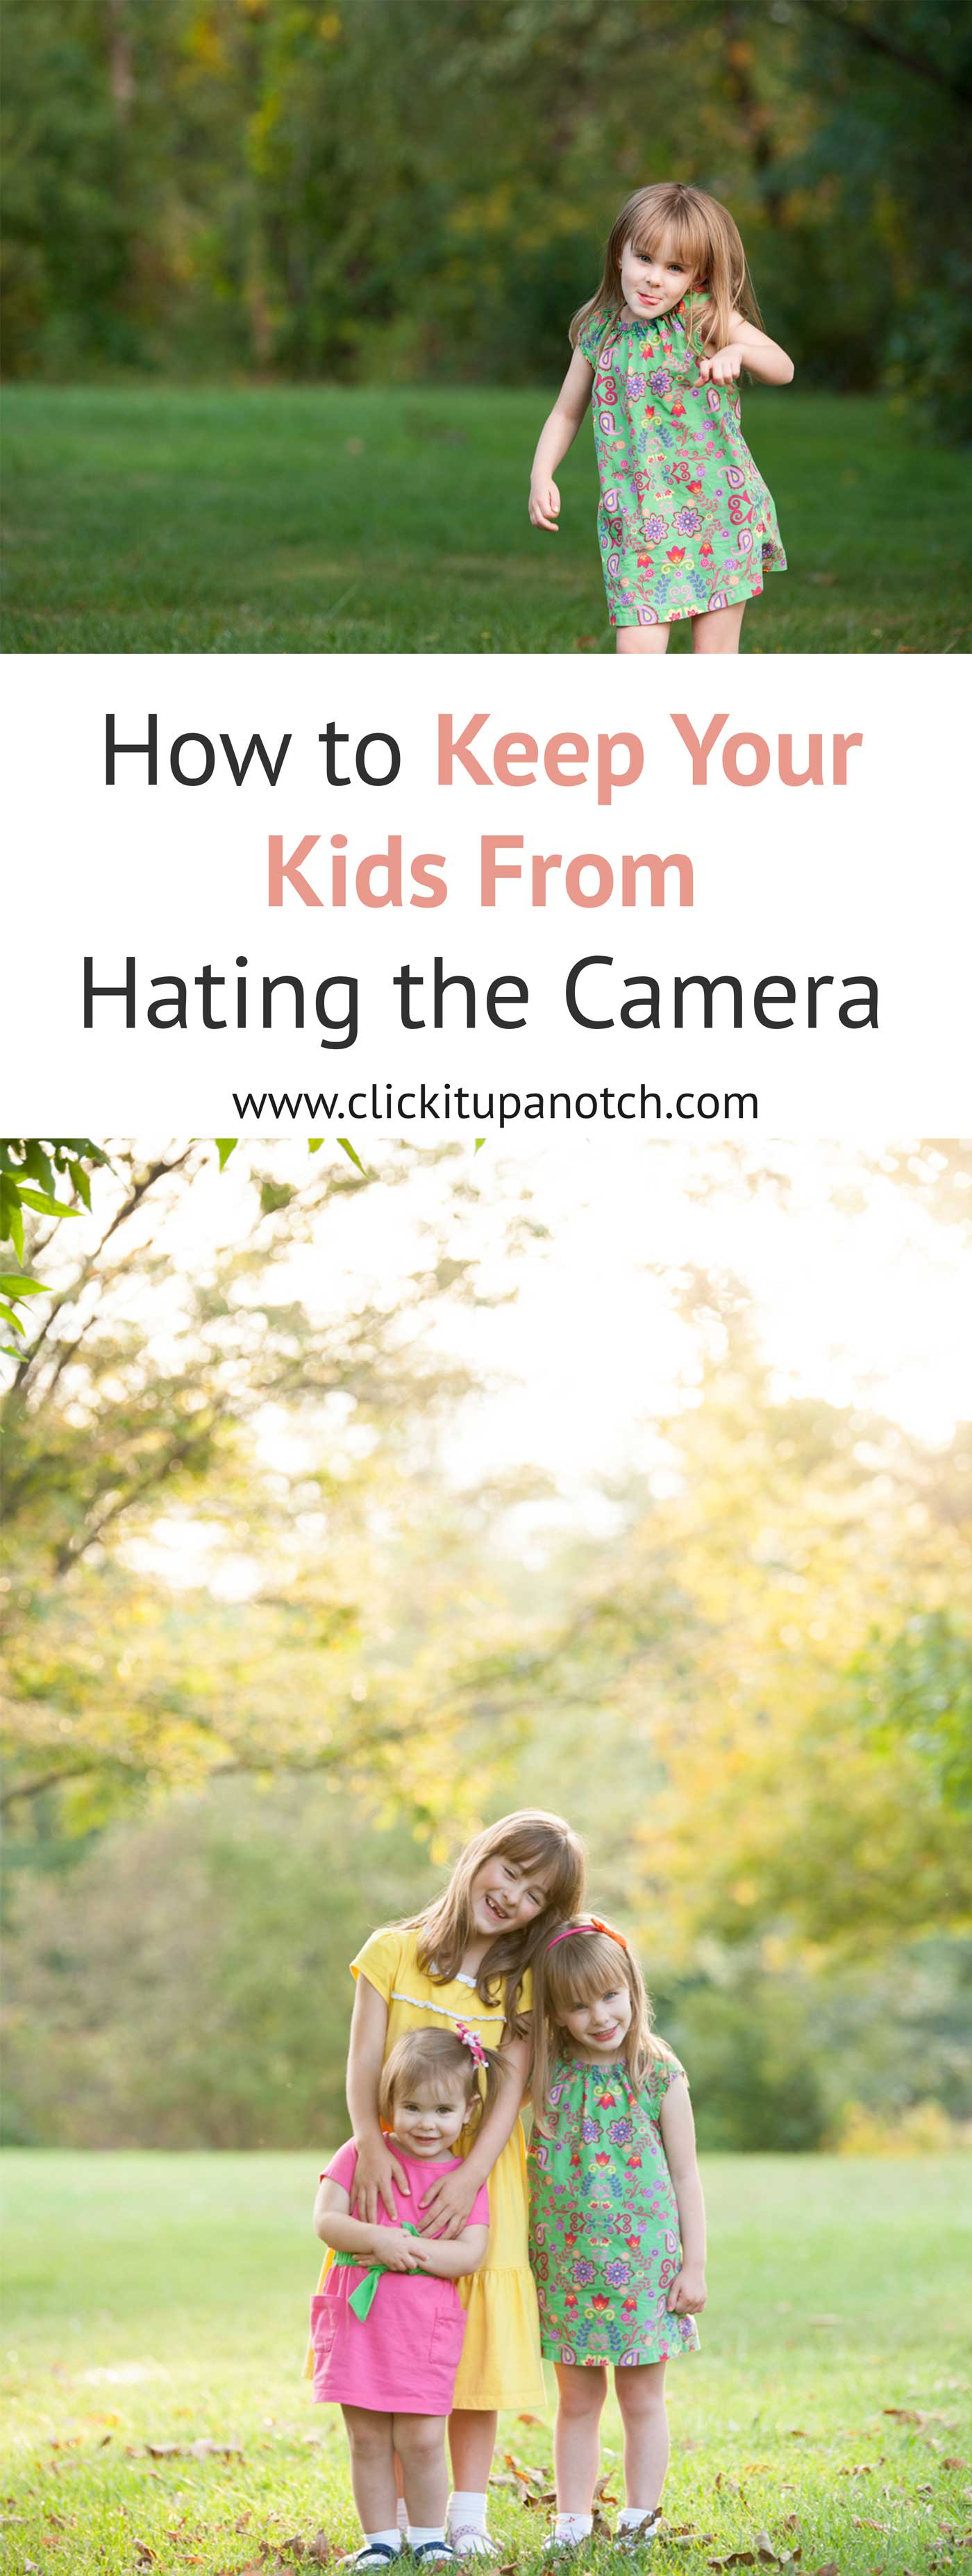 If you are dealing with your child running from the camera is a must-read! How to Keep Your Kids From Hating the Camera